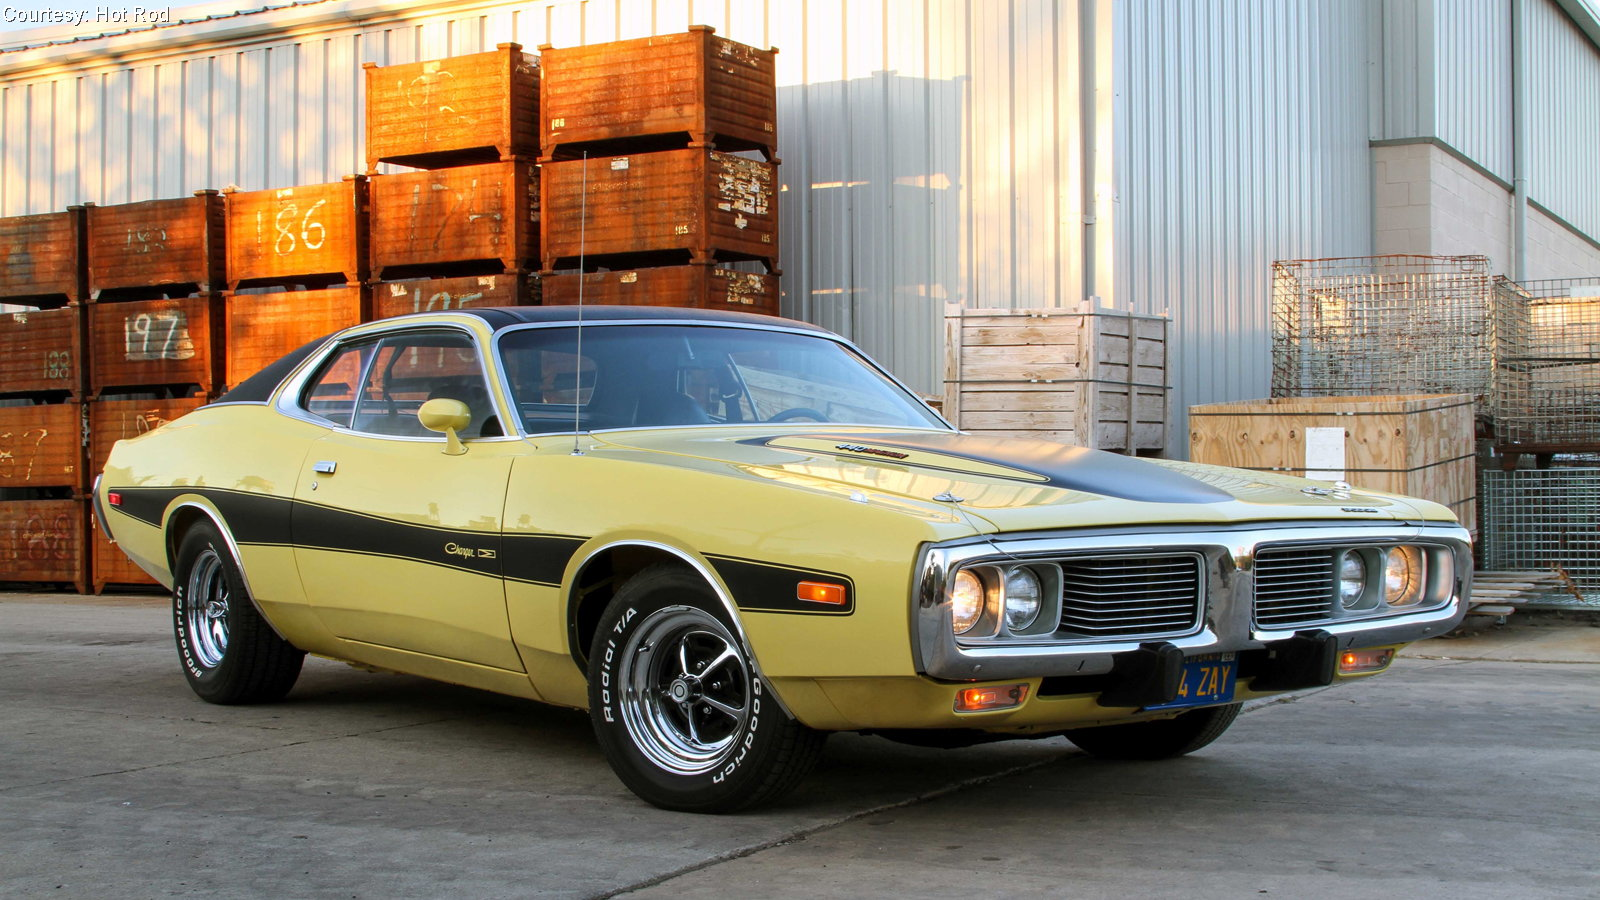 Do You Recognize this 1974 Movie Lot Charger?